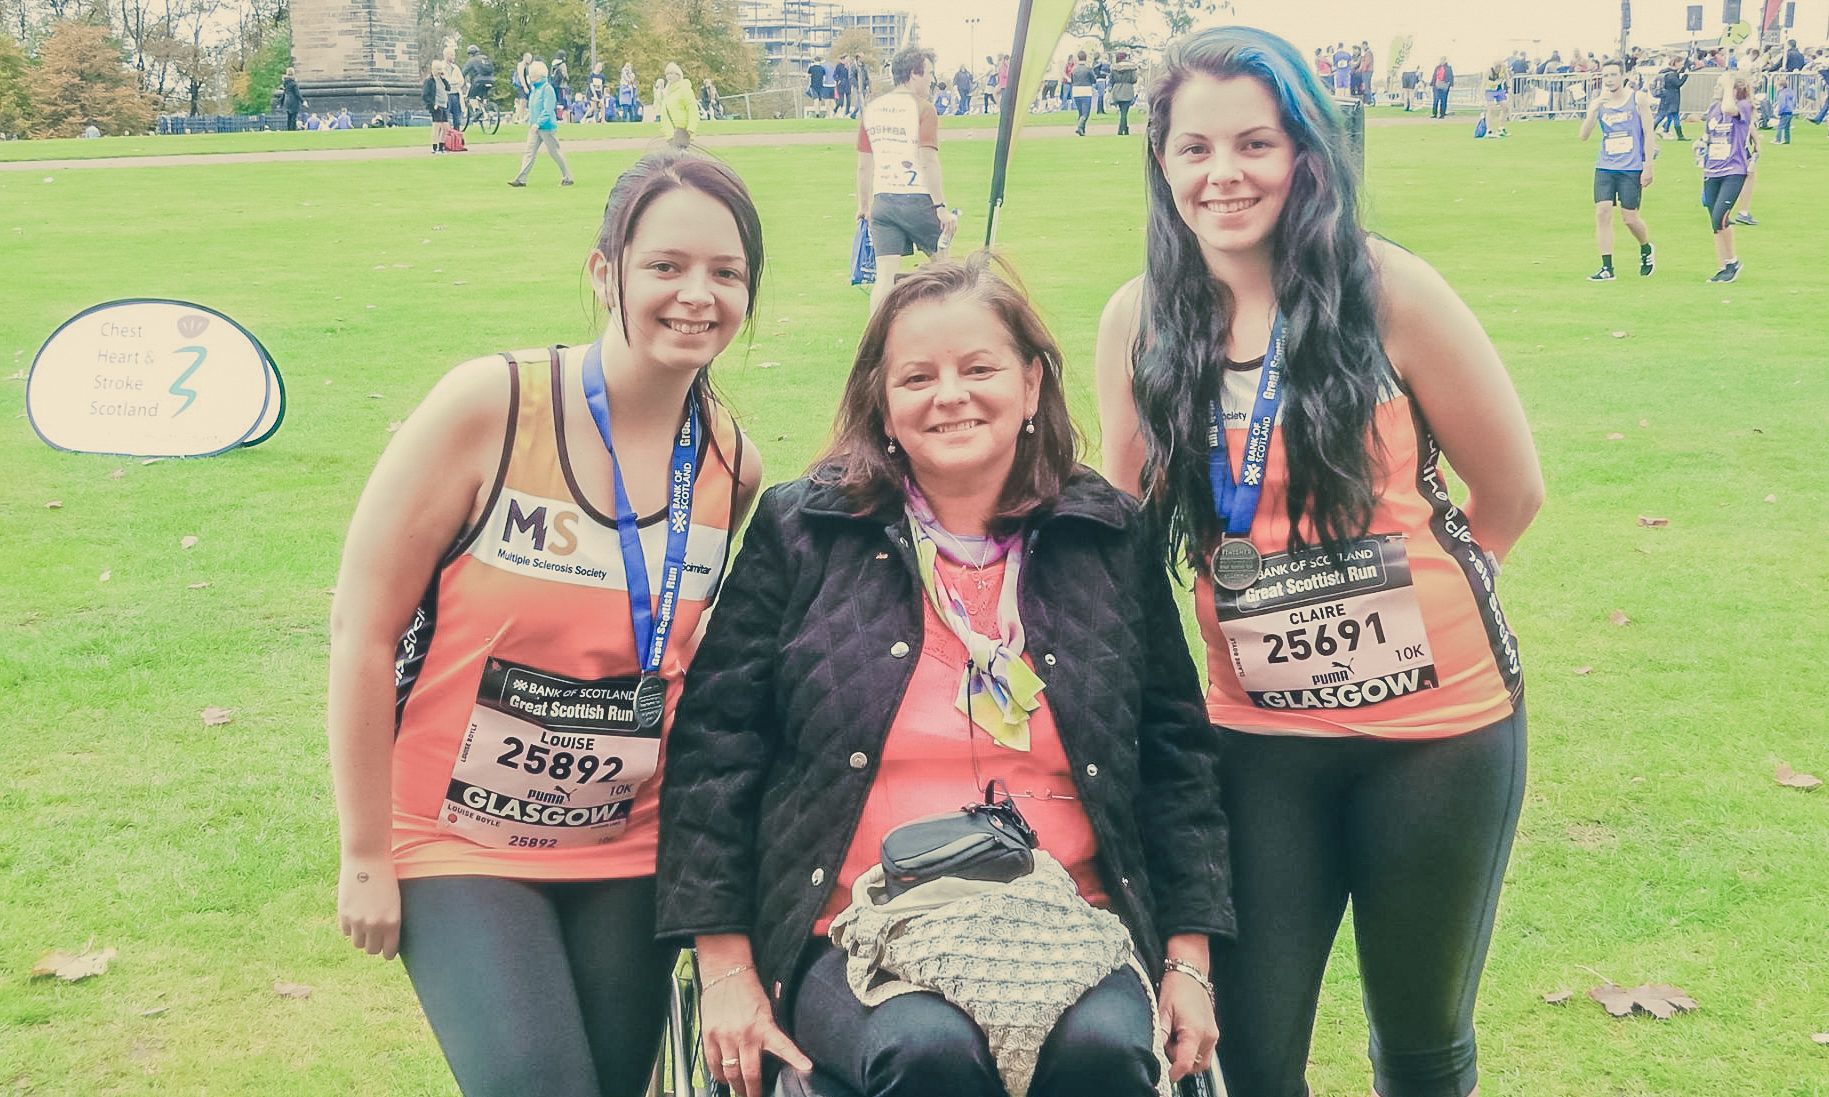 Louise Boyle, the late Margaret Theresa Kane (Claire's mother) and Claire Boyle attend a race together.